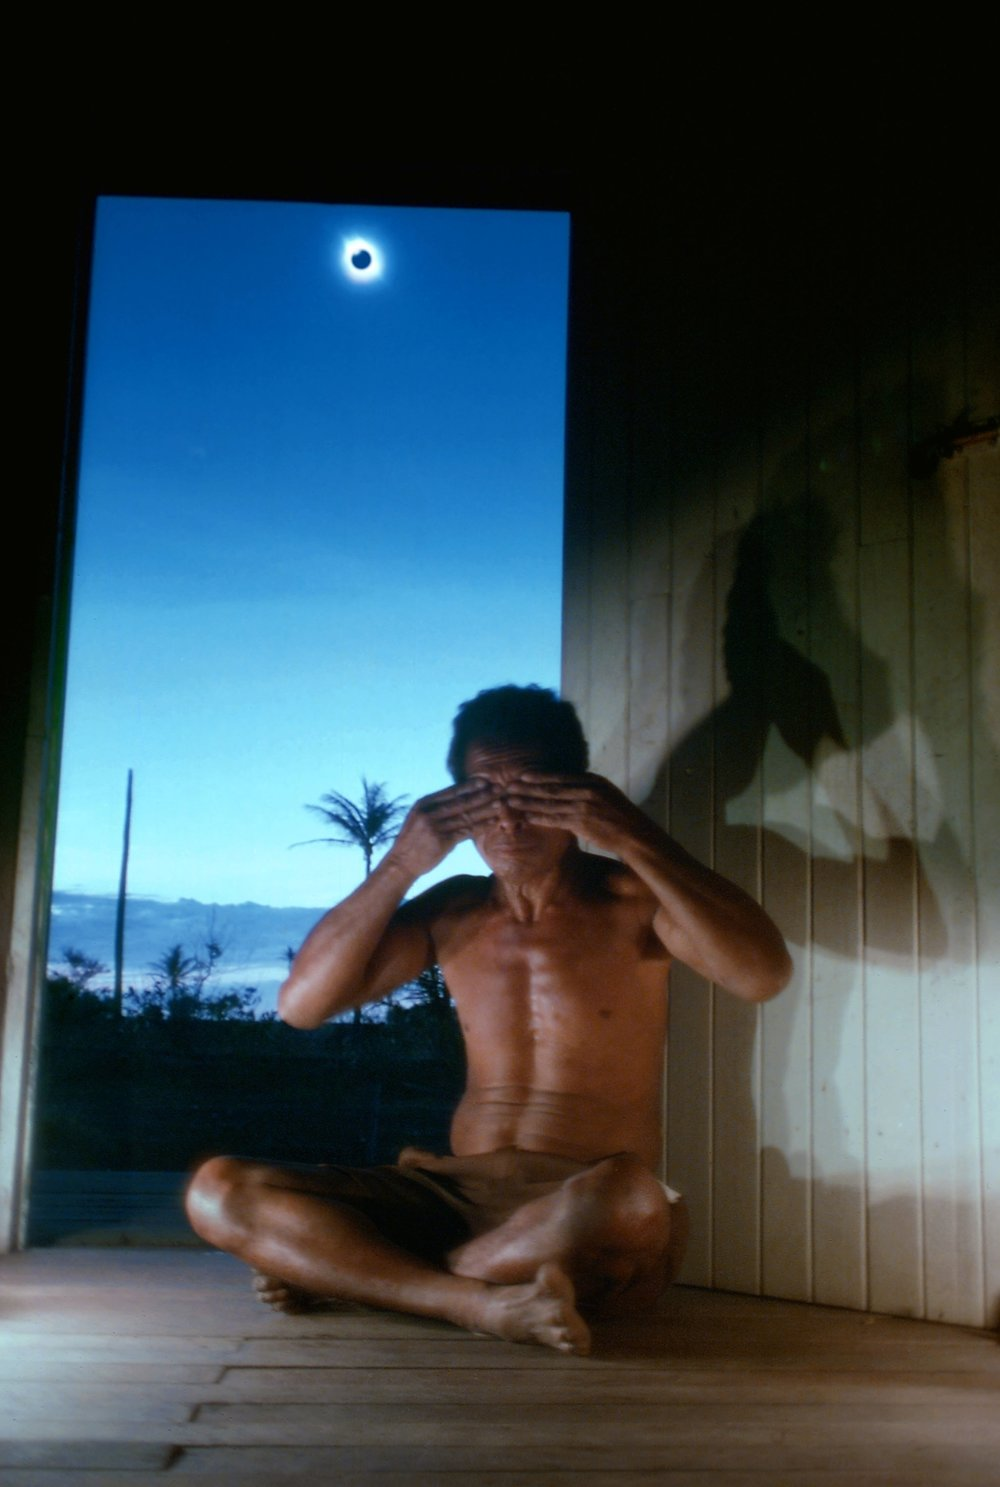 Alu Vali covers his eyes during a total solar eclipse in Hula, Papua New Guinea on November 22, 1984. The Papuan government distributed leaflets warning remote villagers of the risks of looking directly at the sun. Although it would have been safe look during the total phase, Vali was unwilling to look. The total eclipse lasted only 51 seconds here.